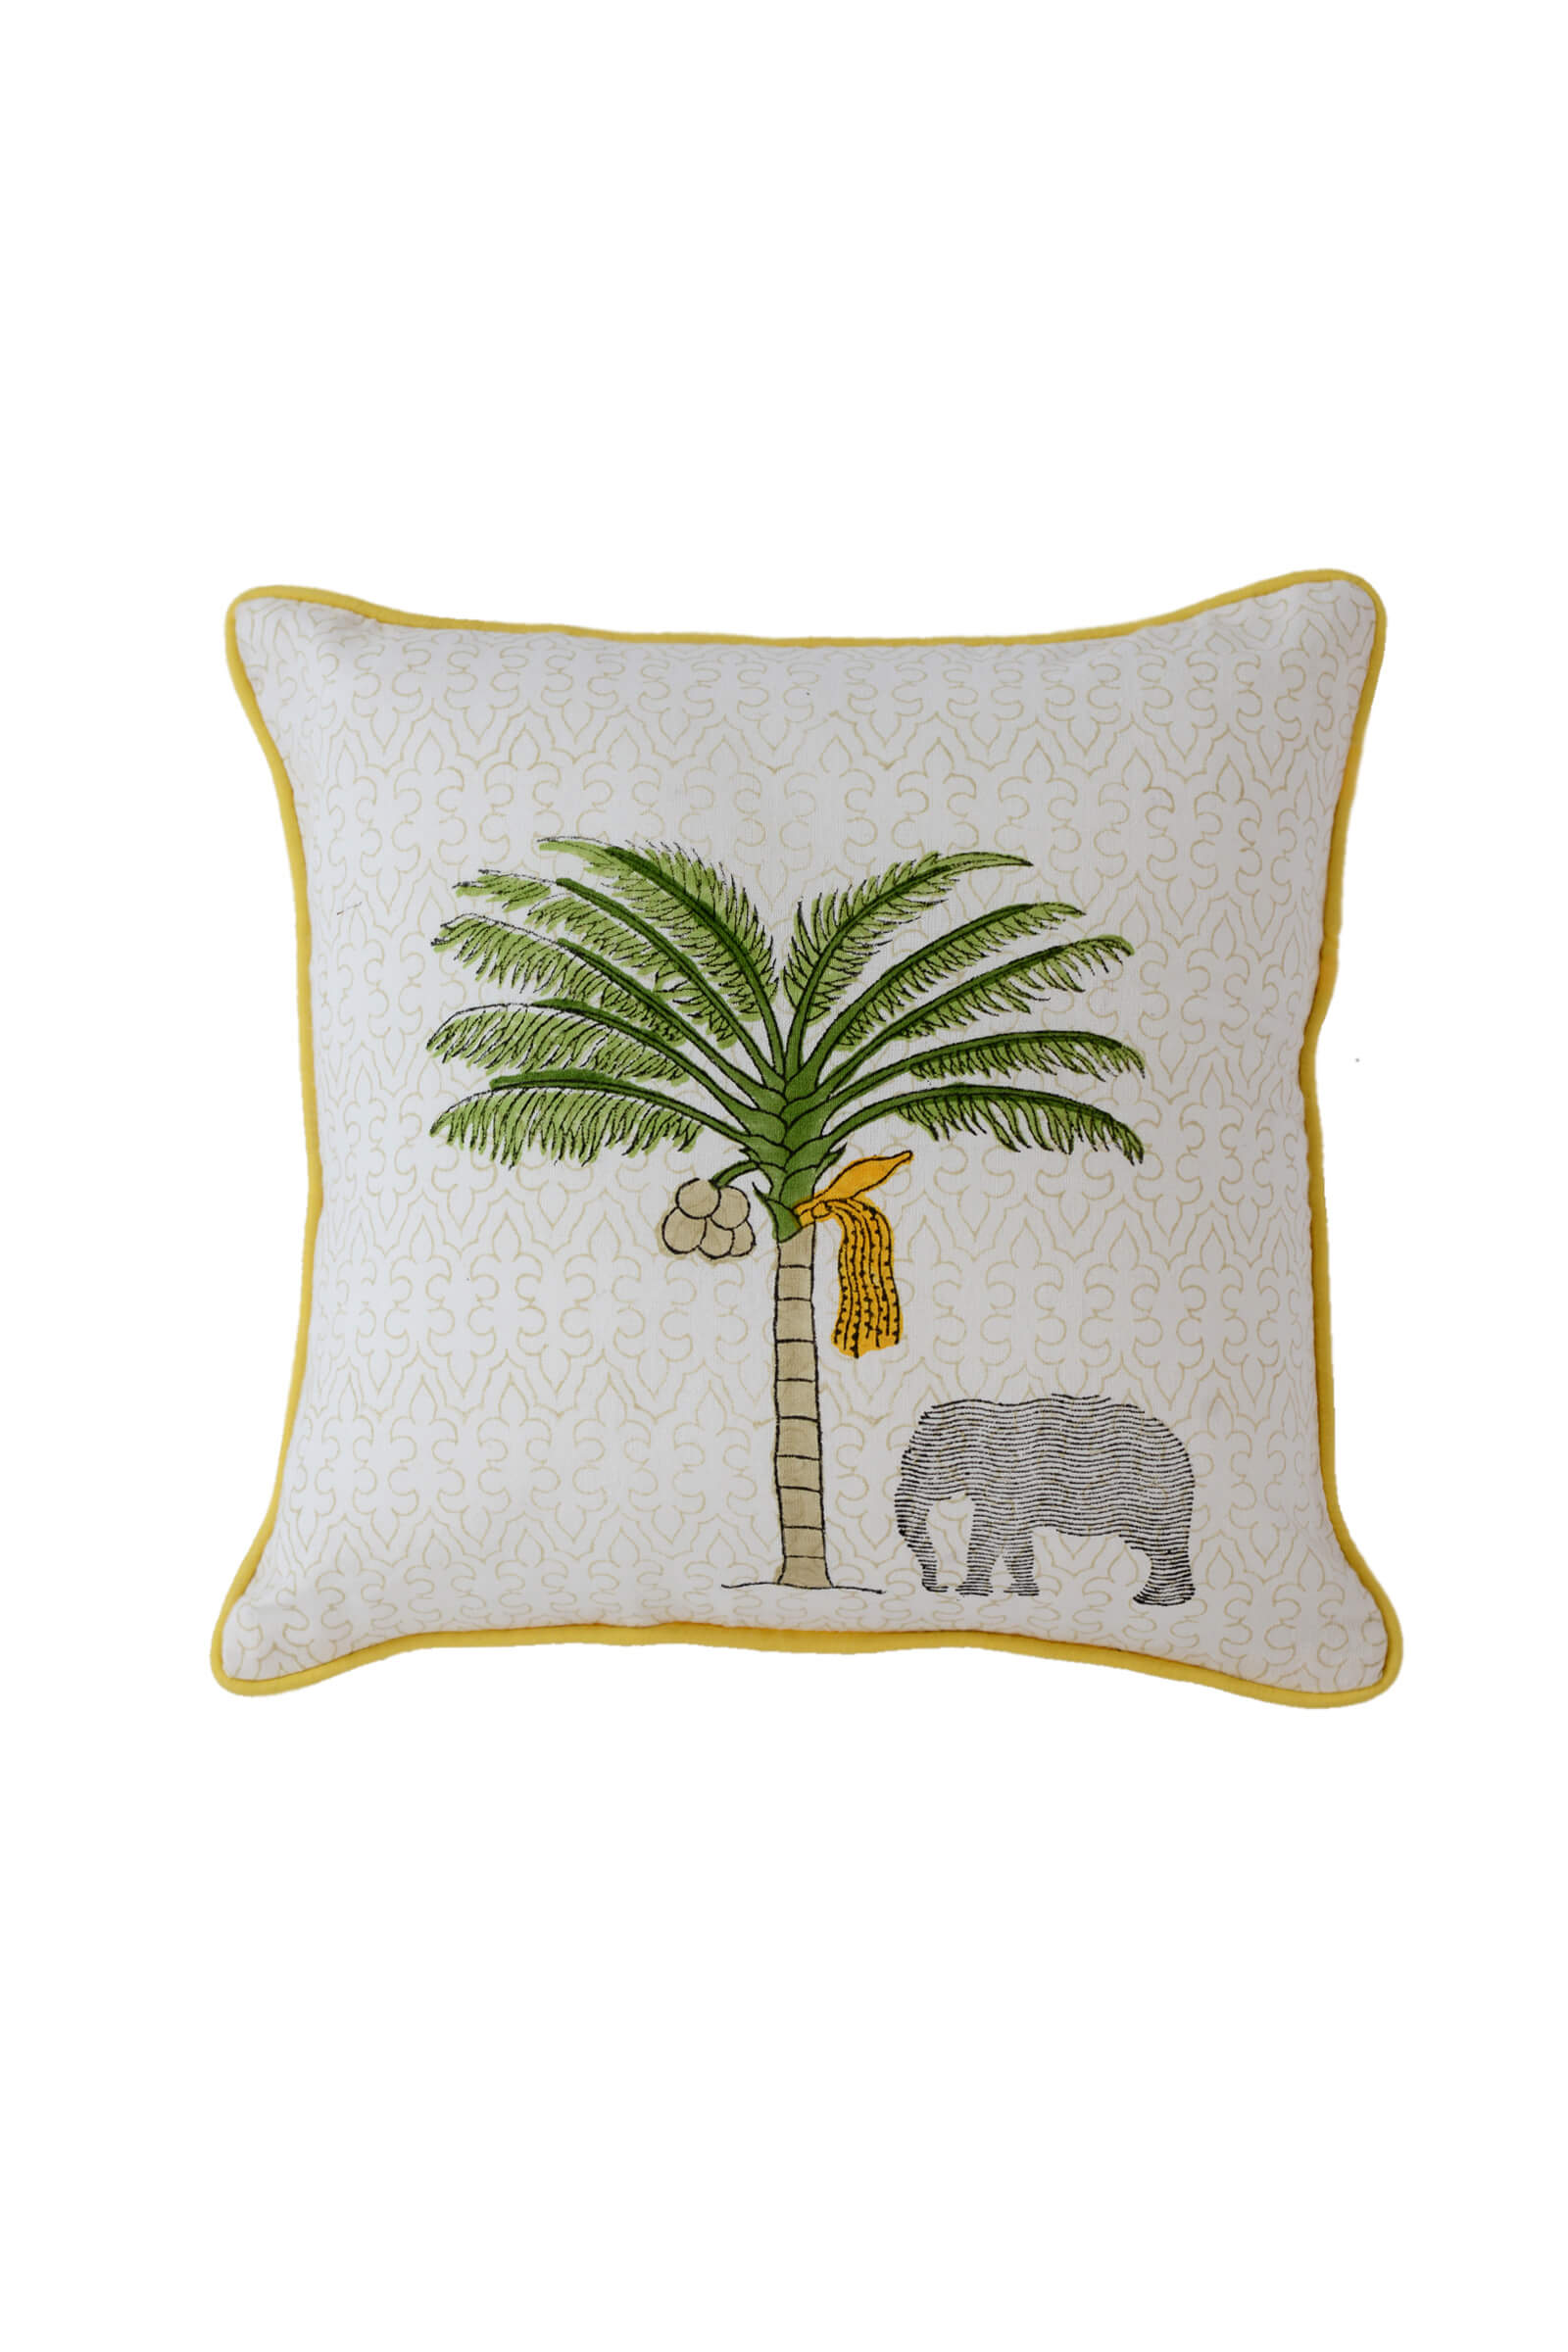 Thekkady Palm Cushion Cover